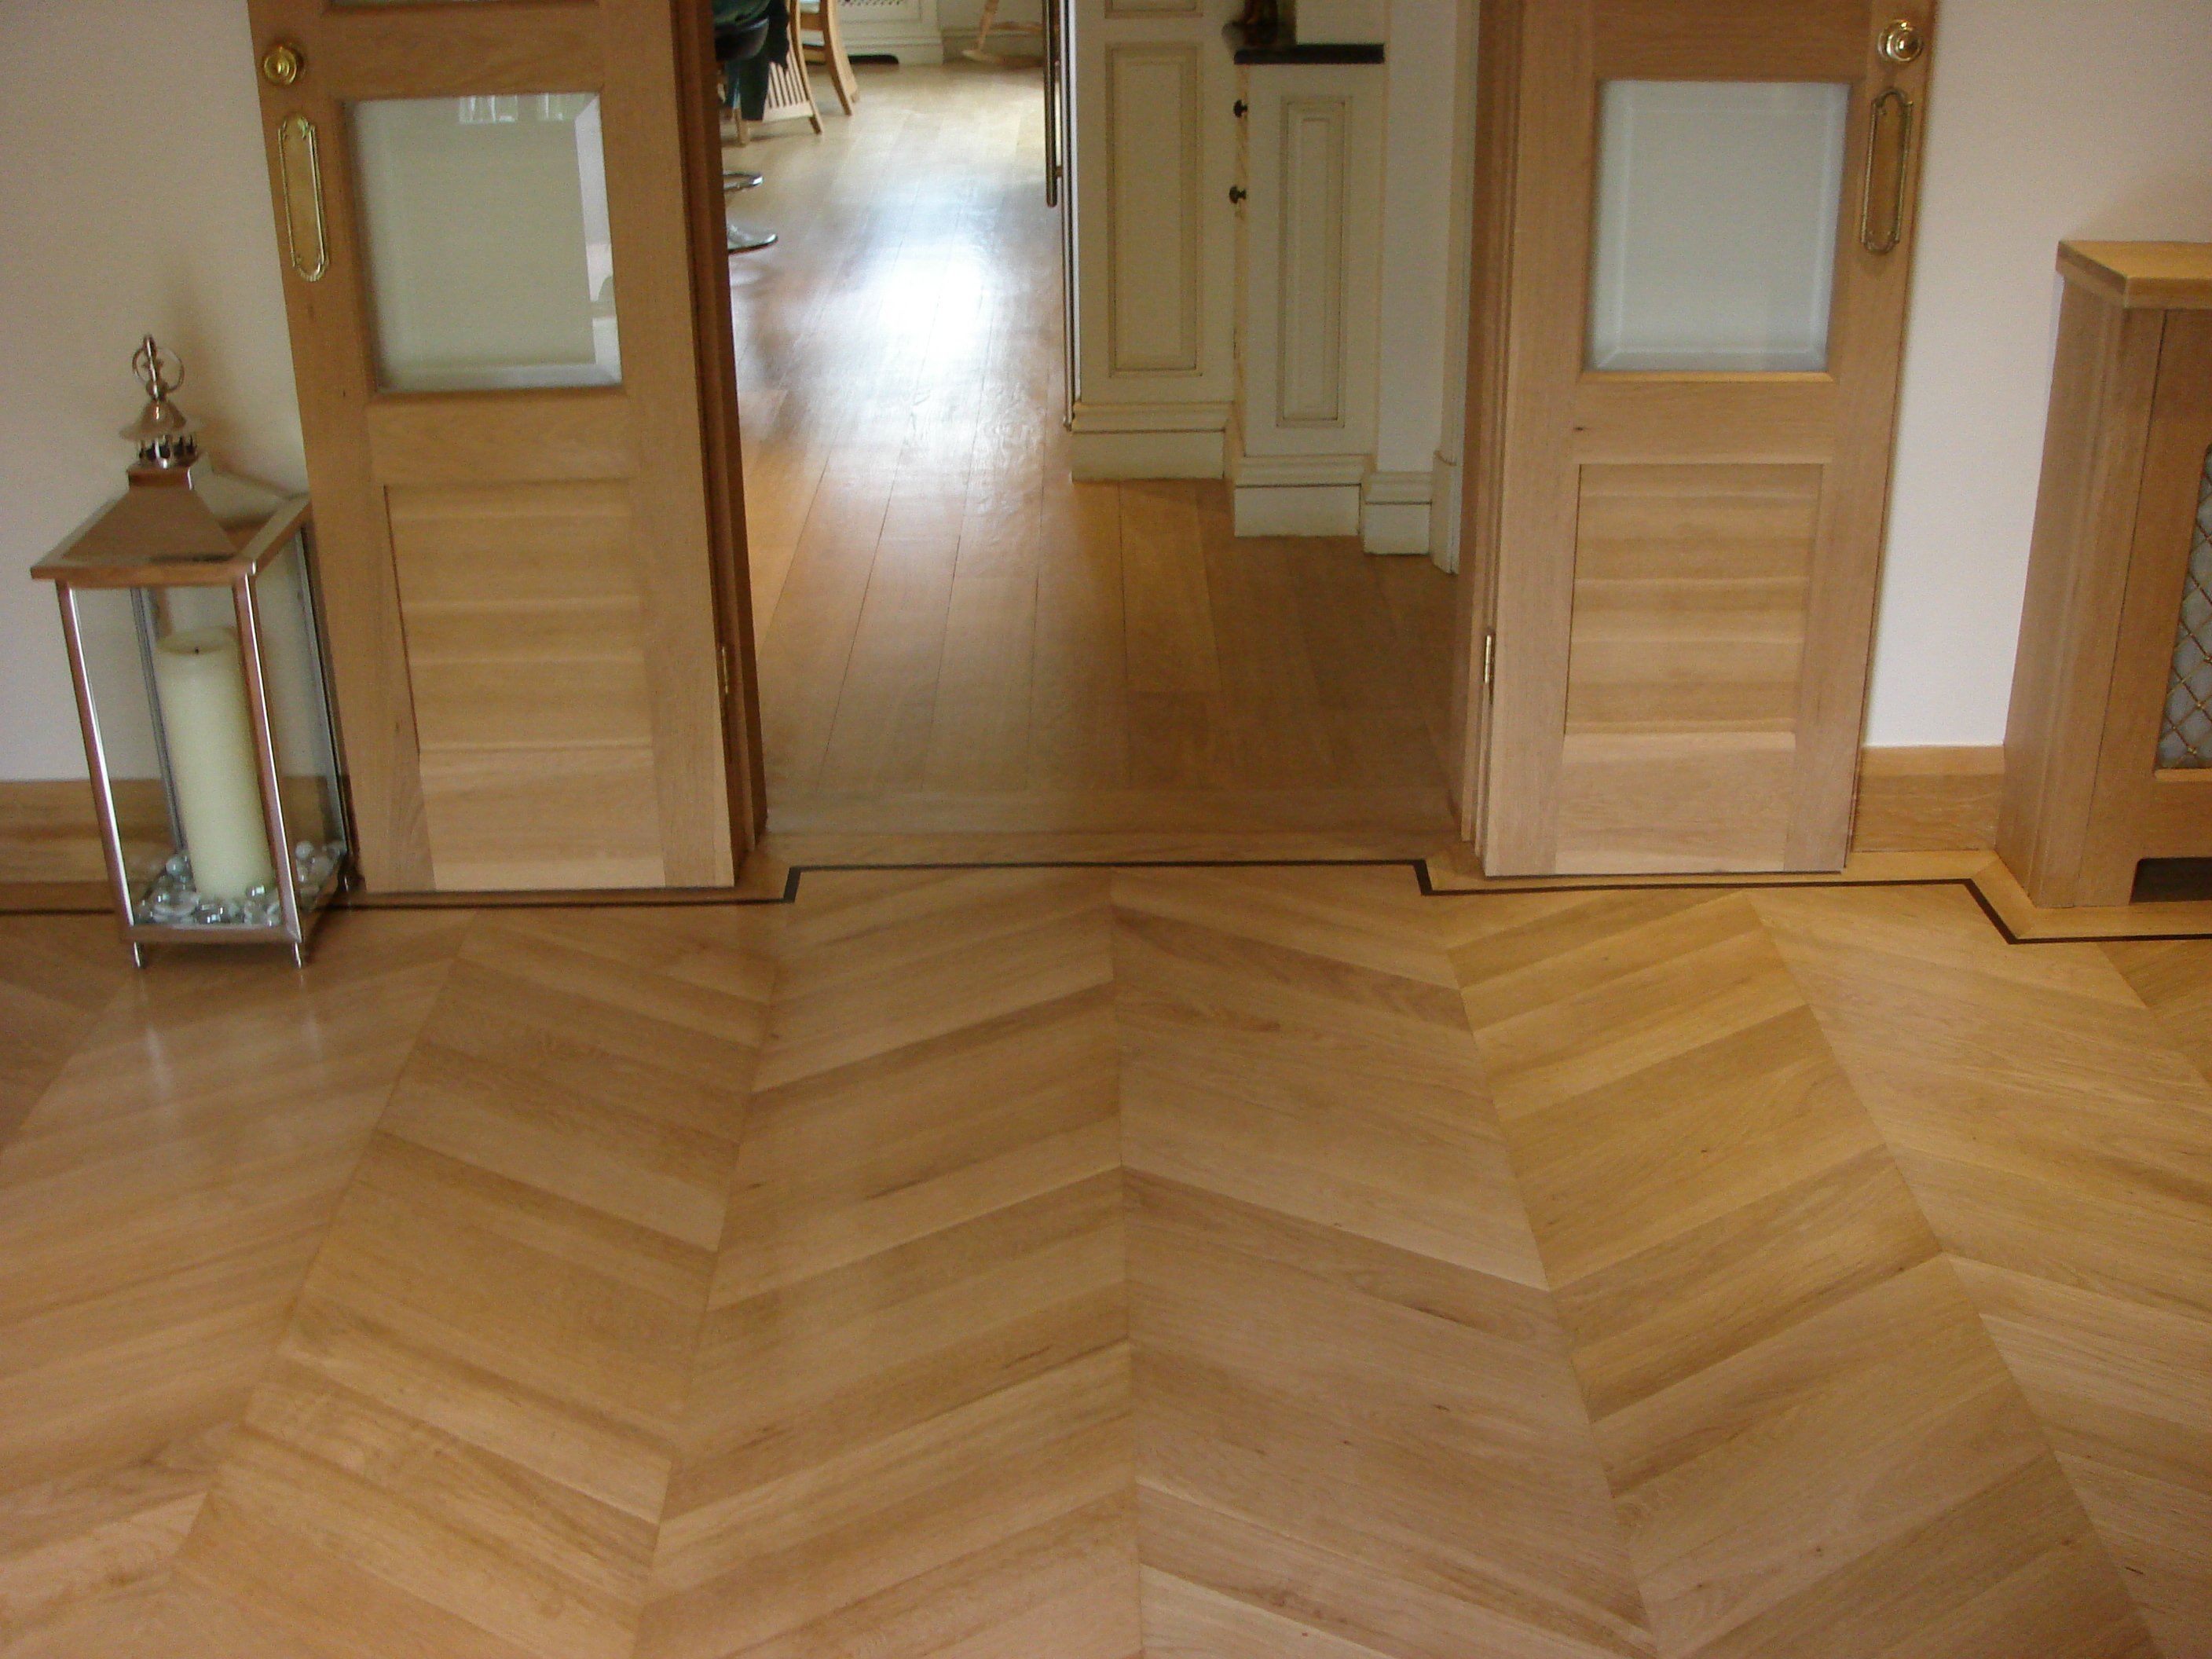 parquet floor extended through series of rooms